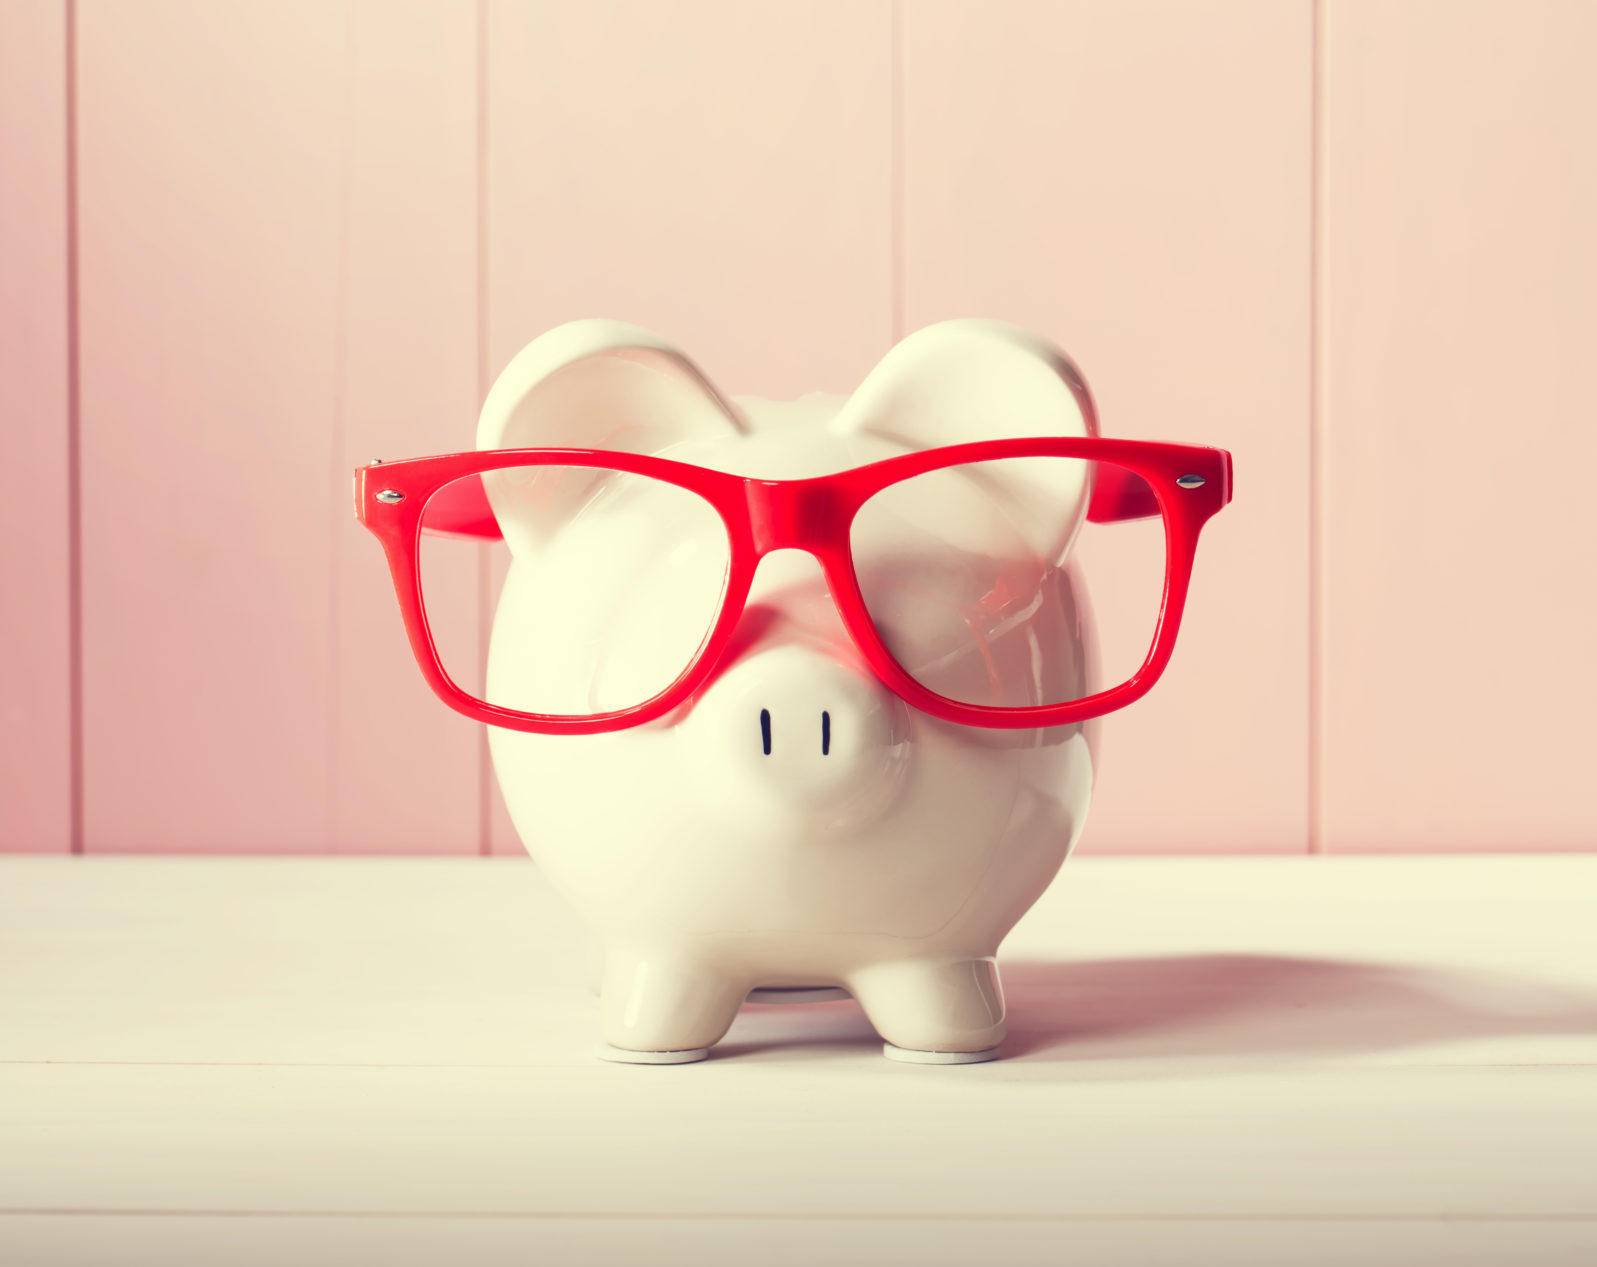 Piggy bank with red glasses